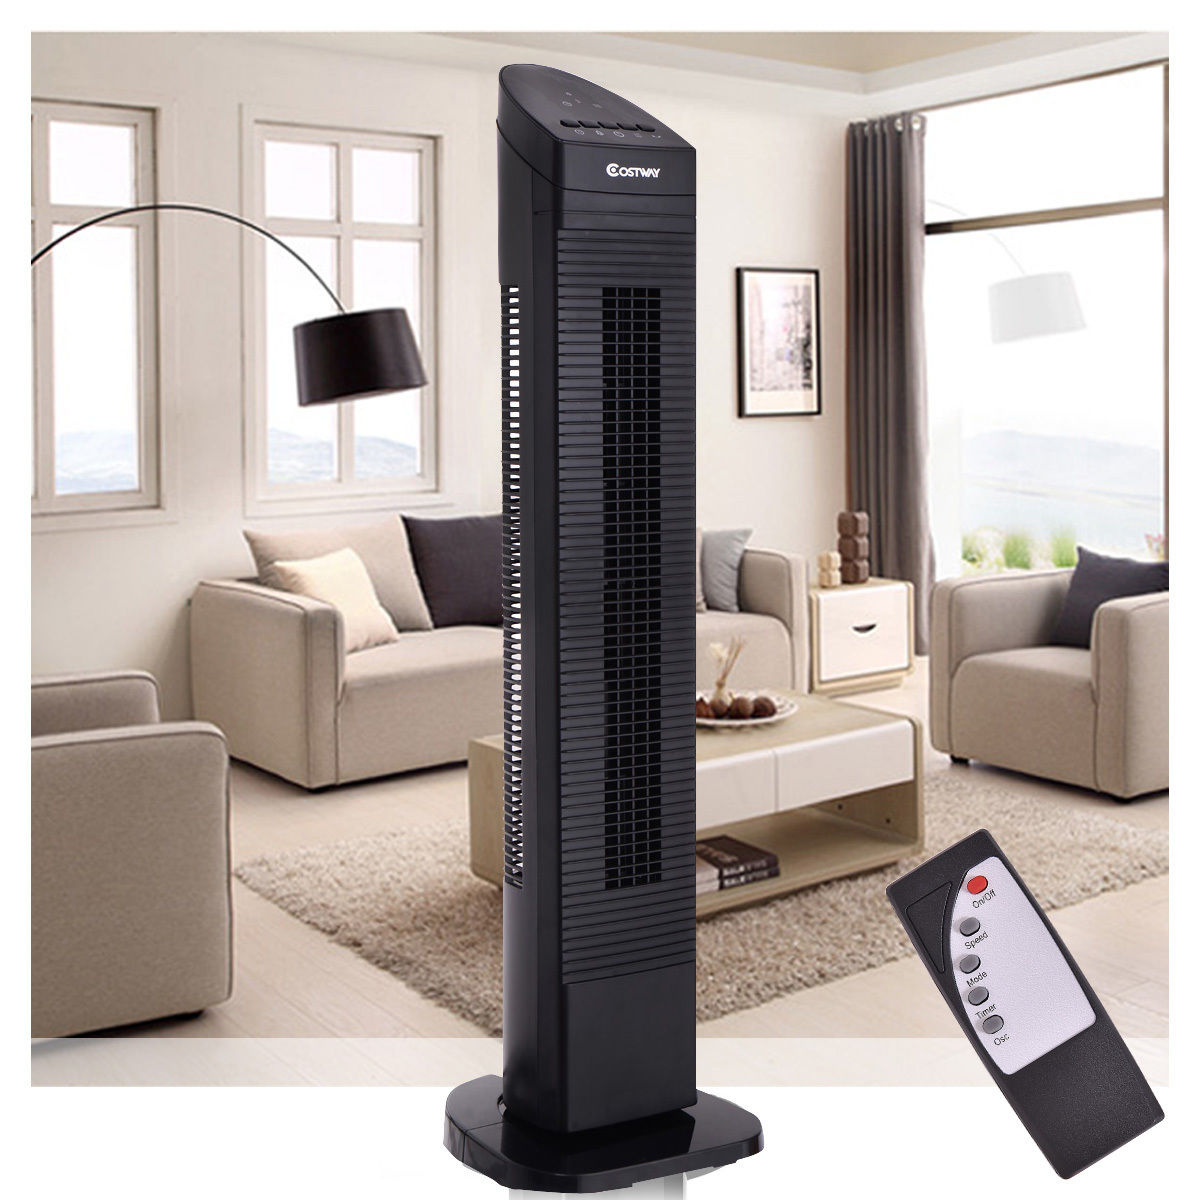 Costway 35'' Tower Fan Portable Oscillating Cooling Bladeless 3 Speed